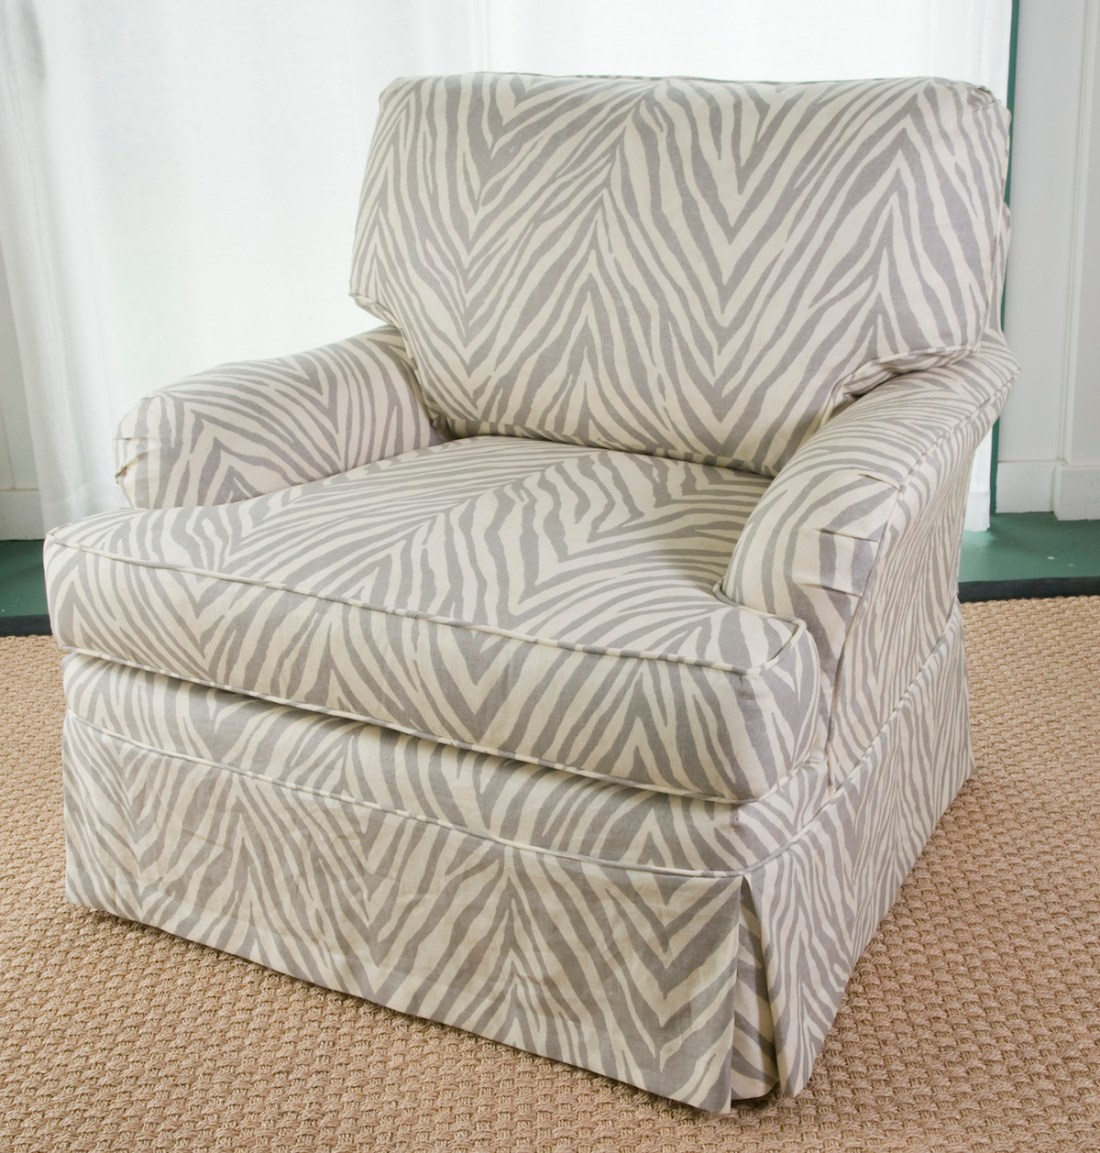 Animal Print Slipcover